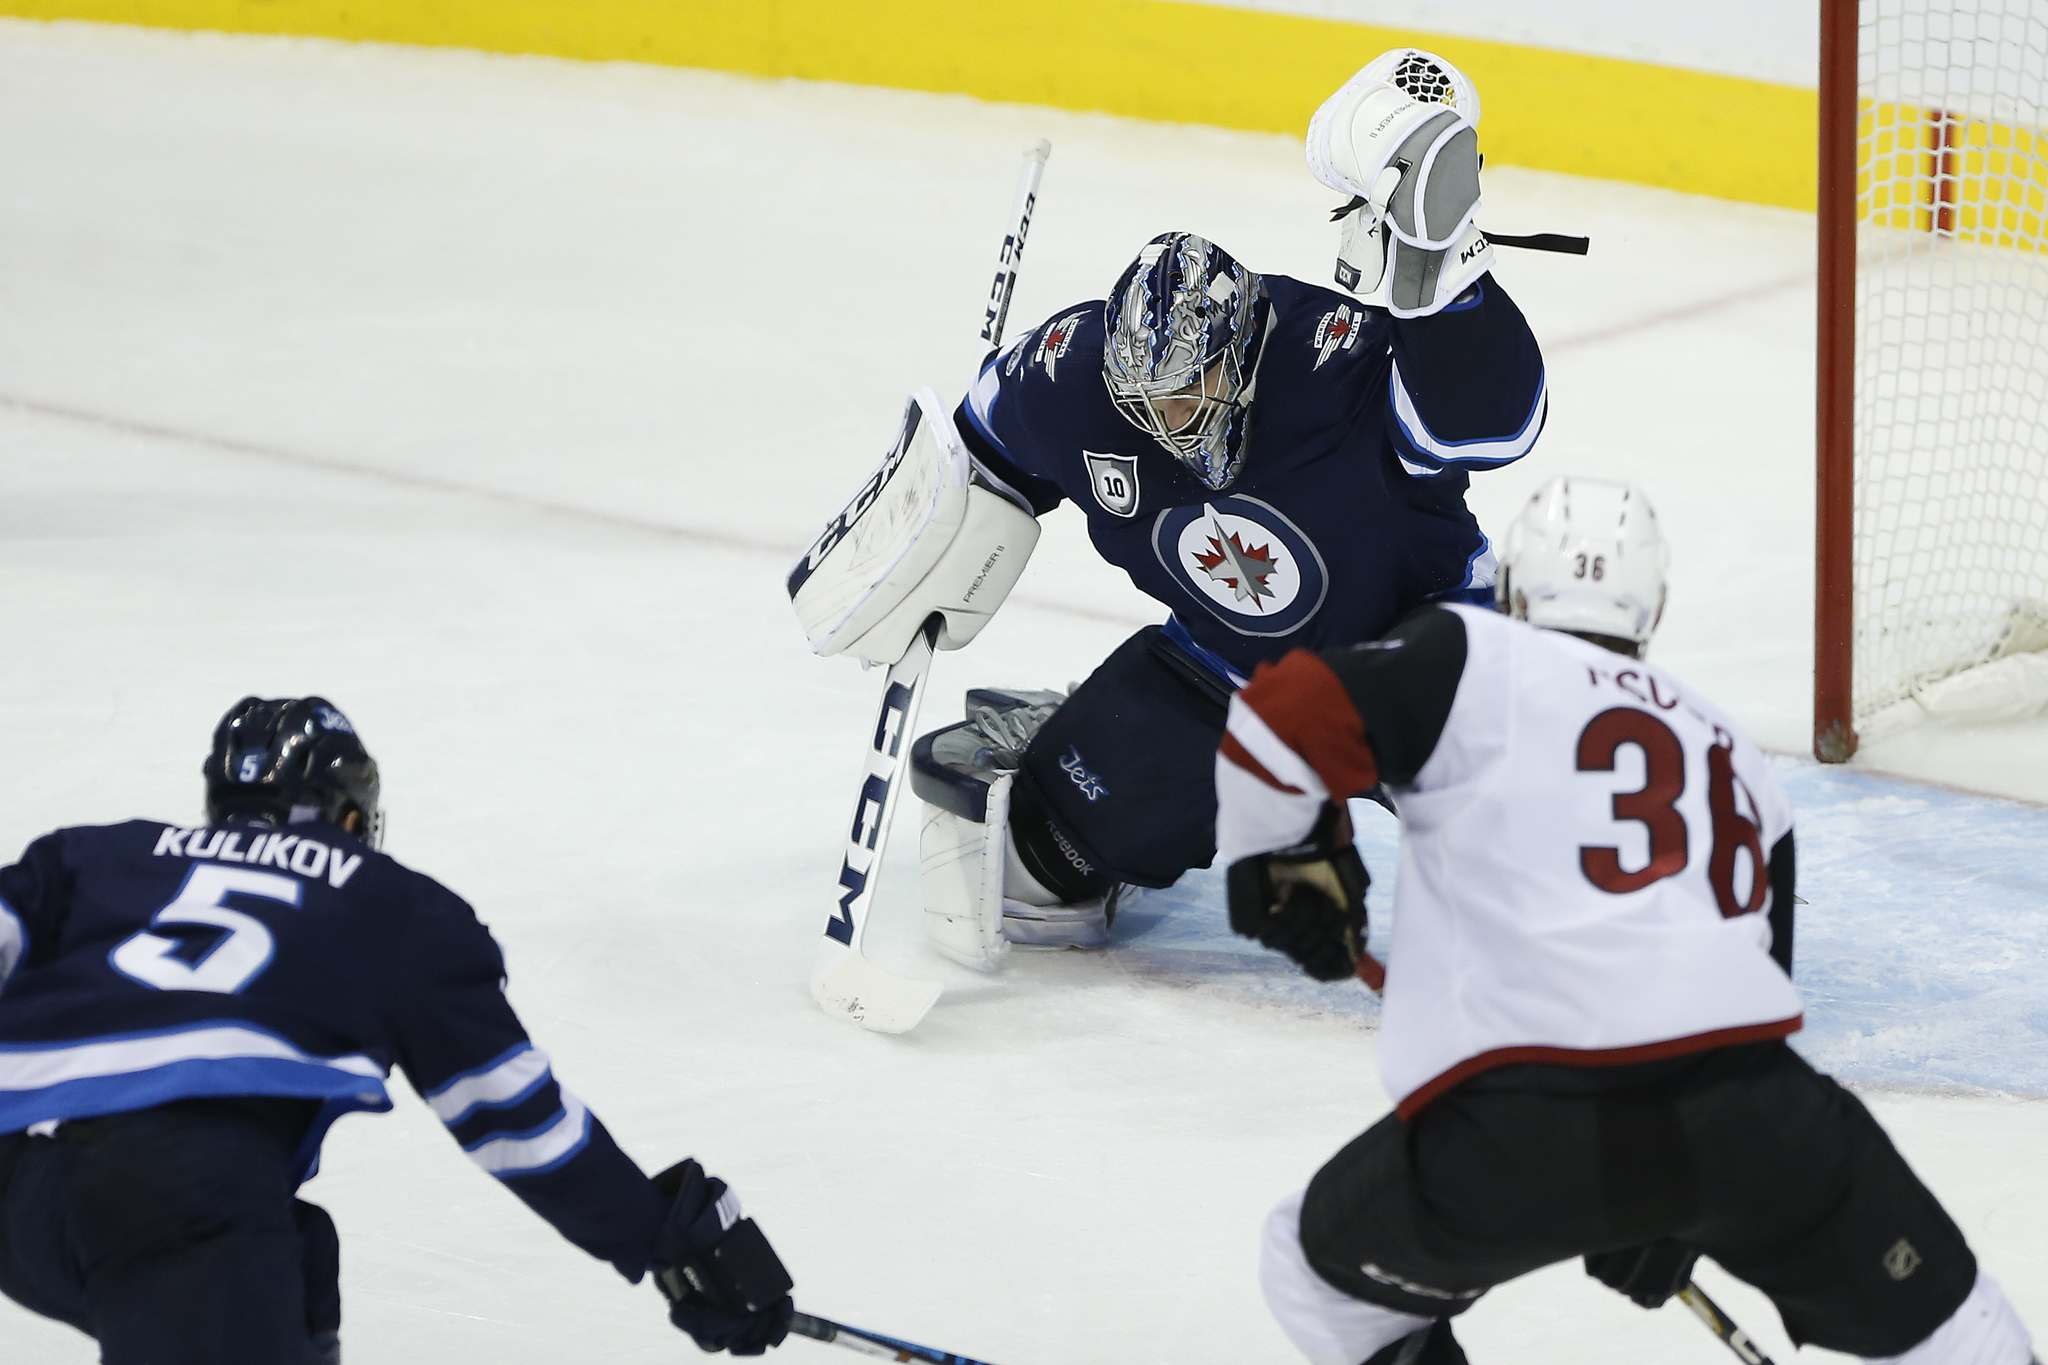 JOHN WOODS / WINNIPEG FREE PRESS</p><p>Winnipeg Jets goaltender Connor Hellebuyck robs Arizona Coyotes&#39; Derek Stepan as Christian Fischer looks for a rebound and Jets&#39; Dmitry Kulikov defends during second period NHL action in Winnipeg on Tuesday.</p>